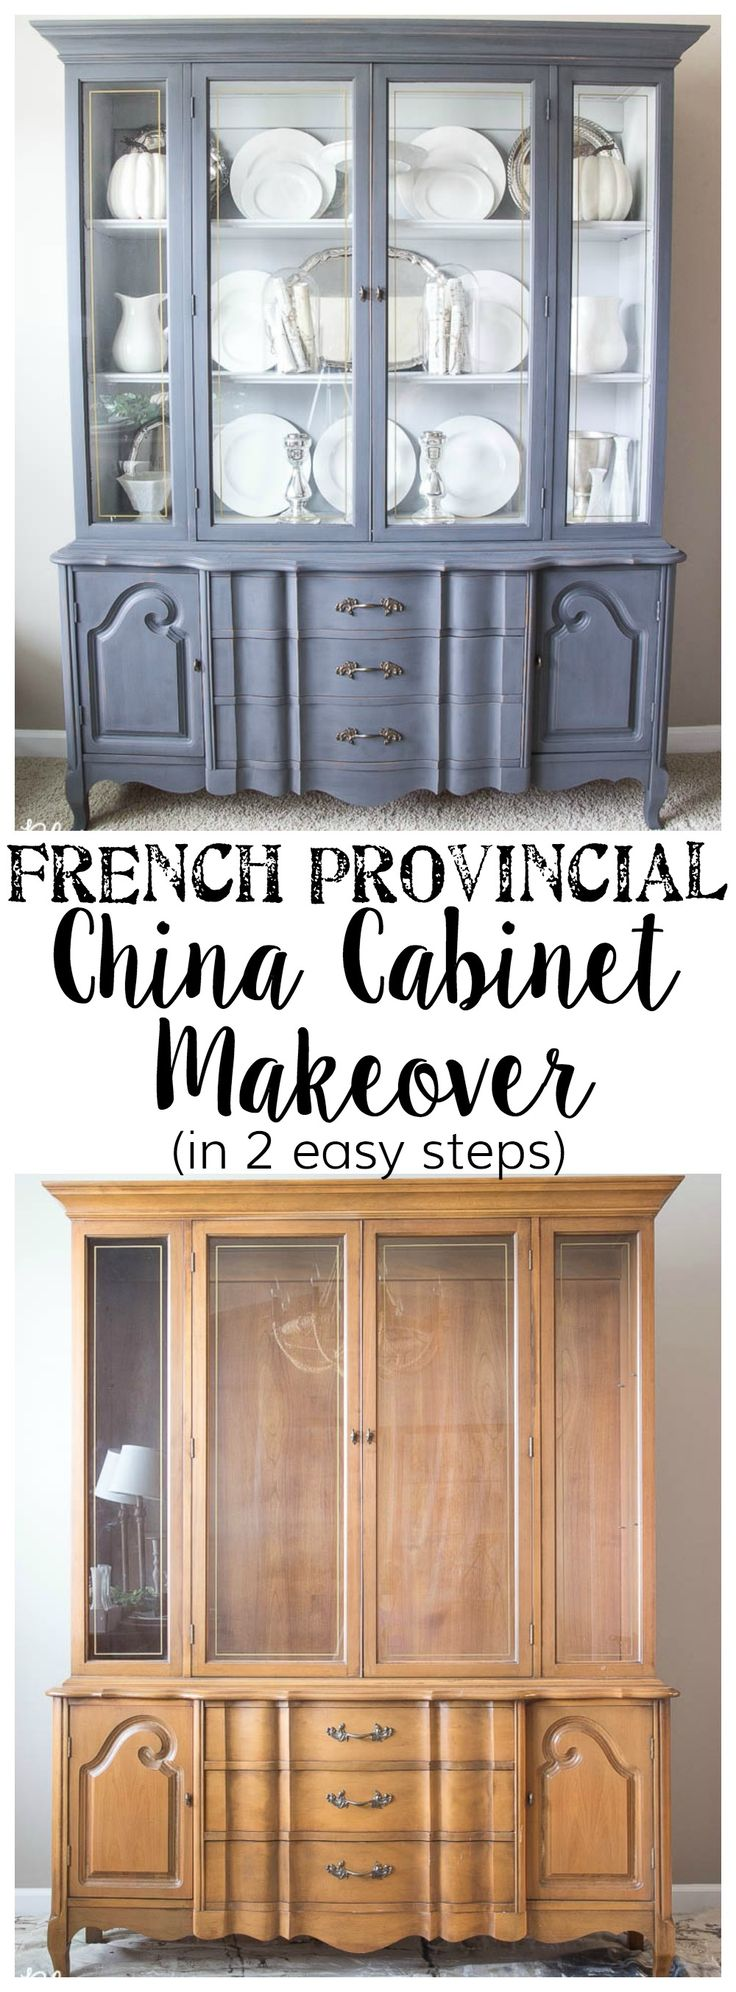 Great tips on paint to use and deglosser -- French Provincial China Cabinet Makeover in 2 Easy Steps | blesserhouse.com